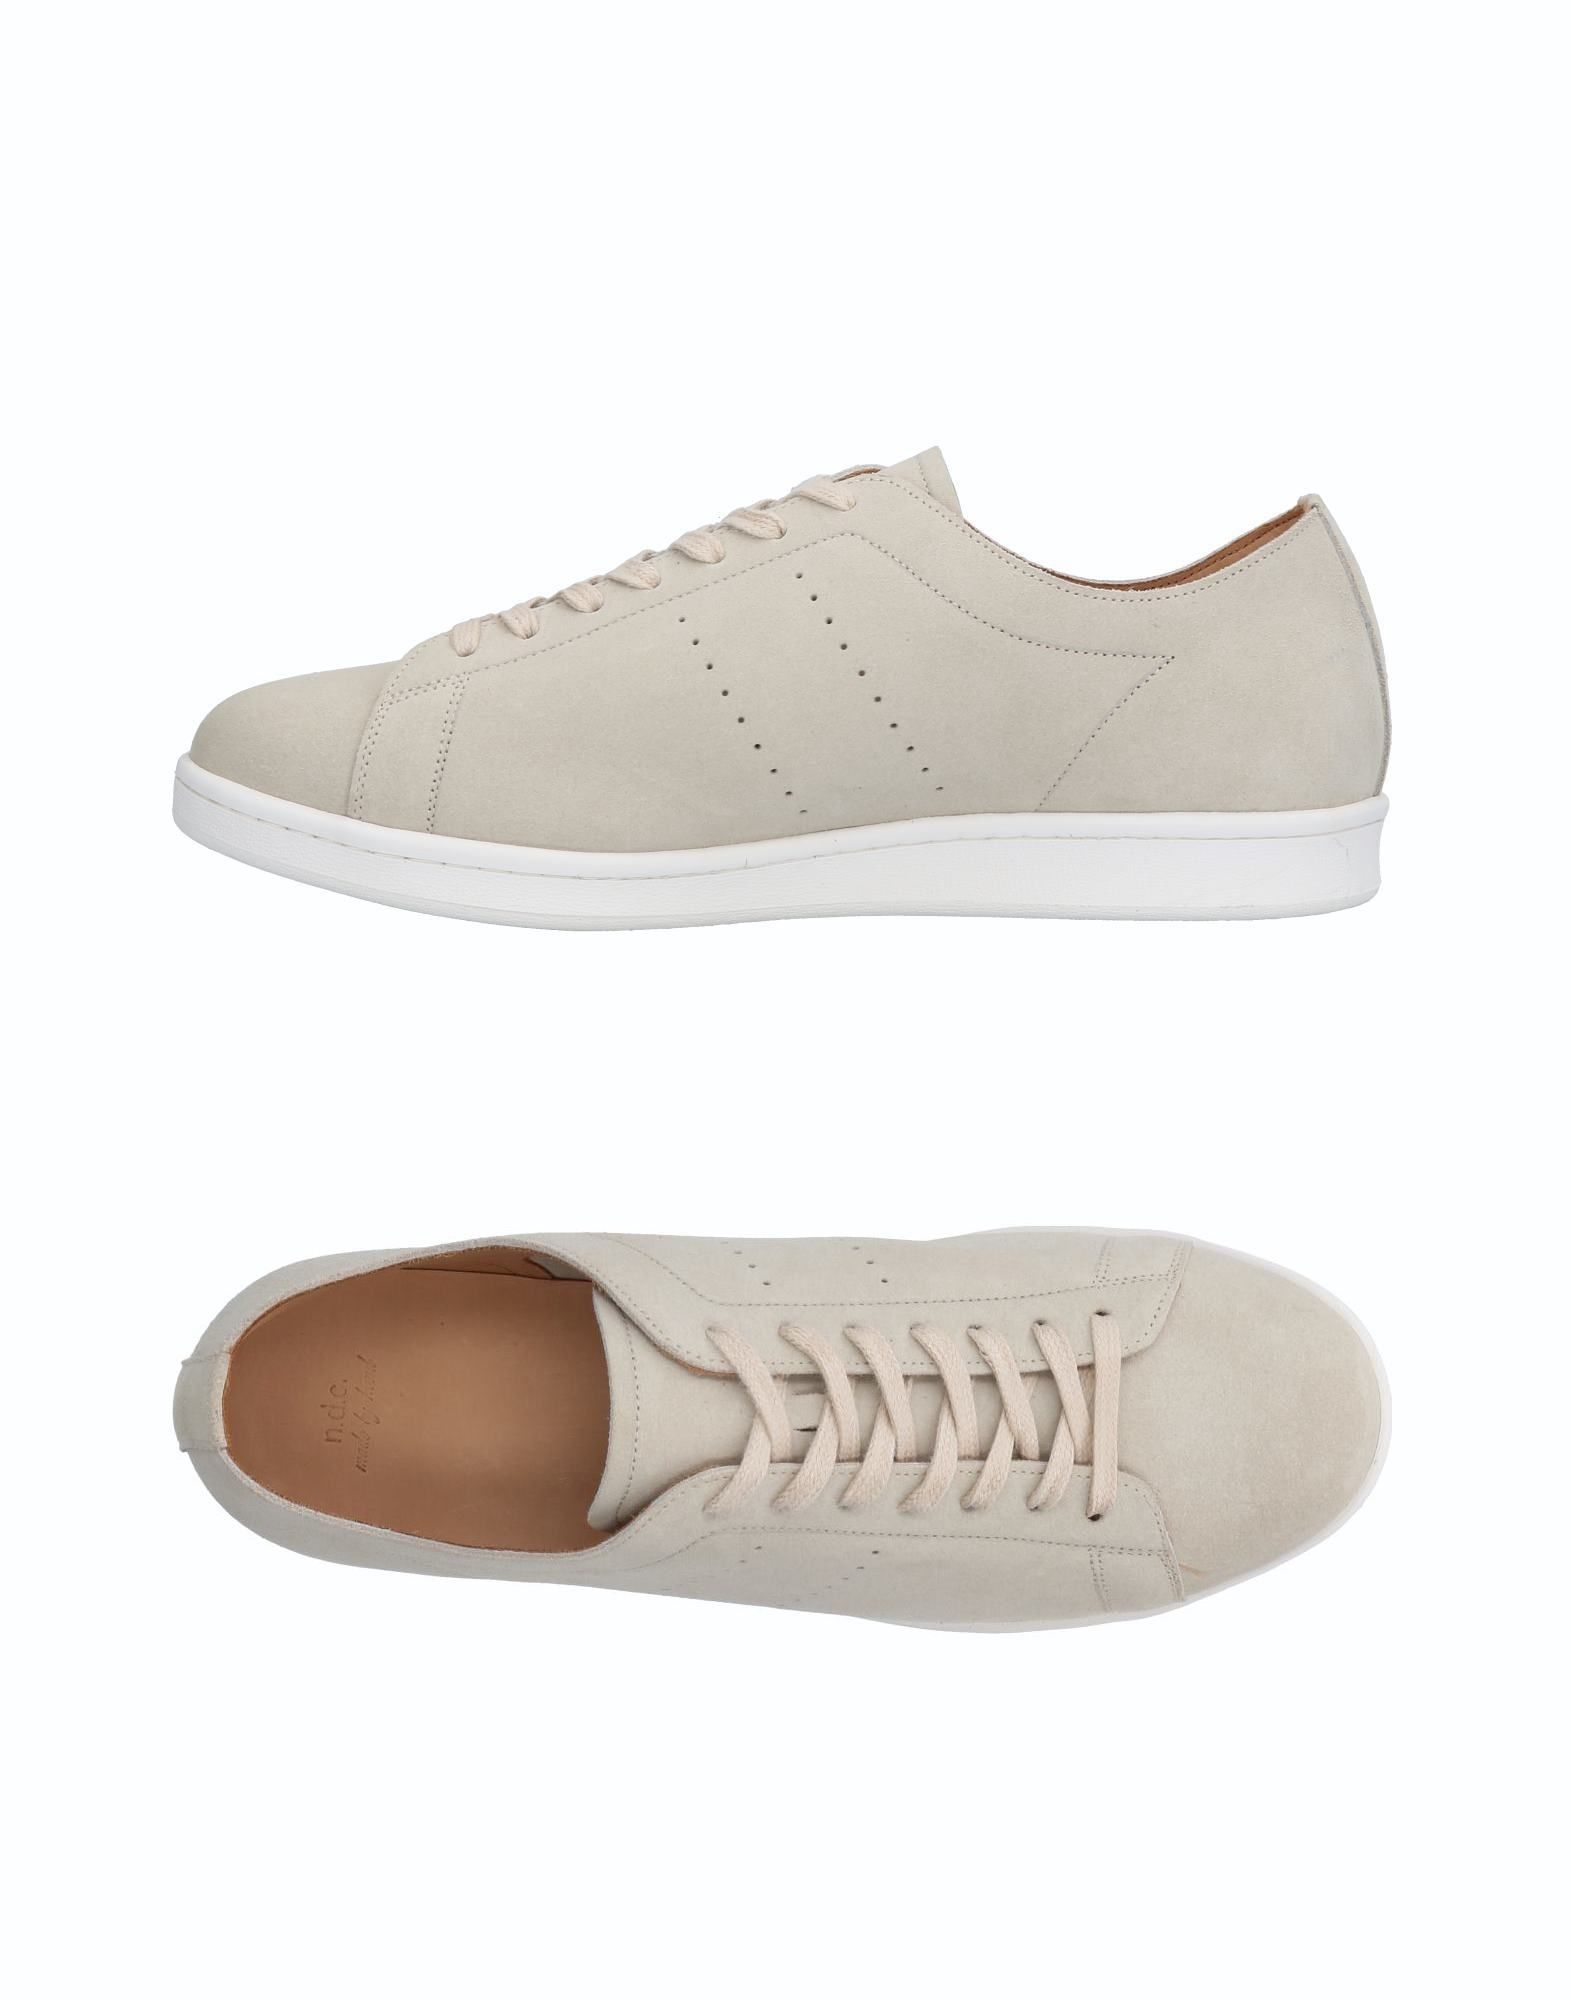 Sneakers N.D.C. Made By Hand Homme - Sneakers N.D.C. Made By Hand  Gris clair Réduction de prix saisonnier, remise